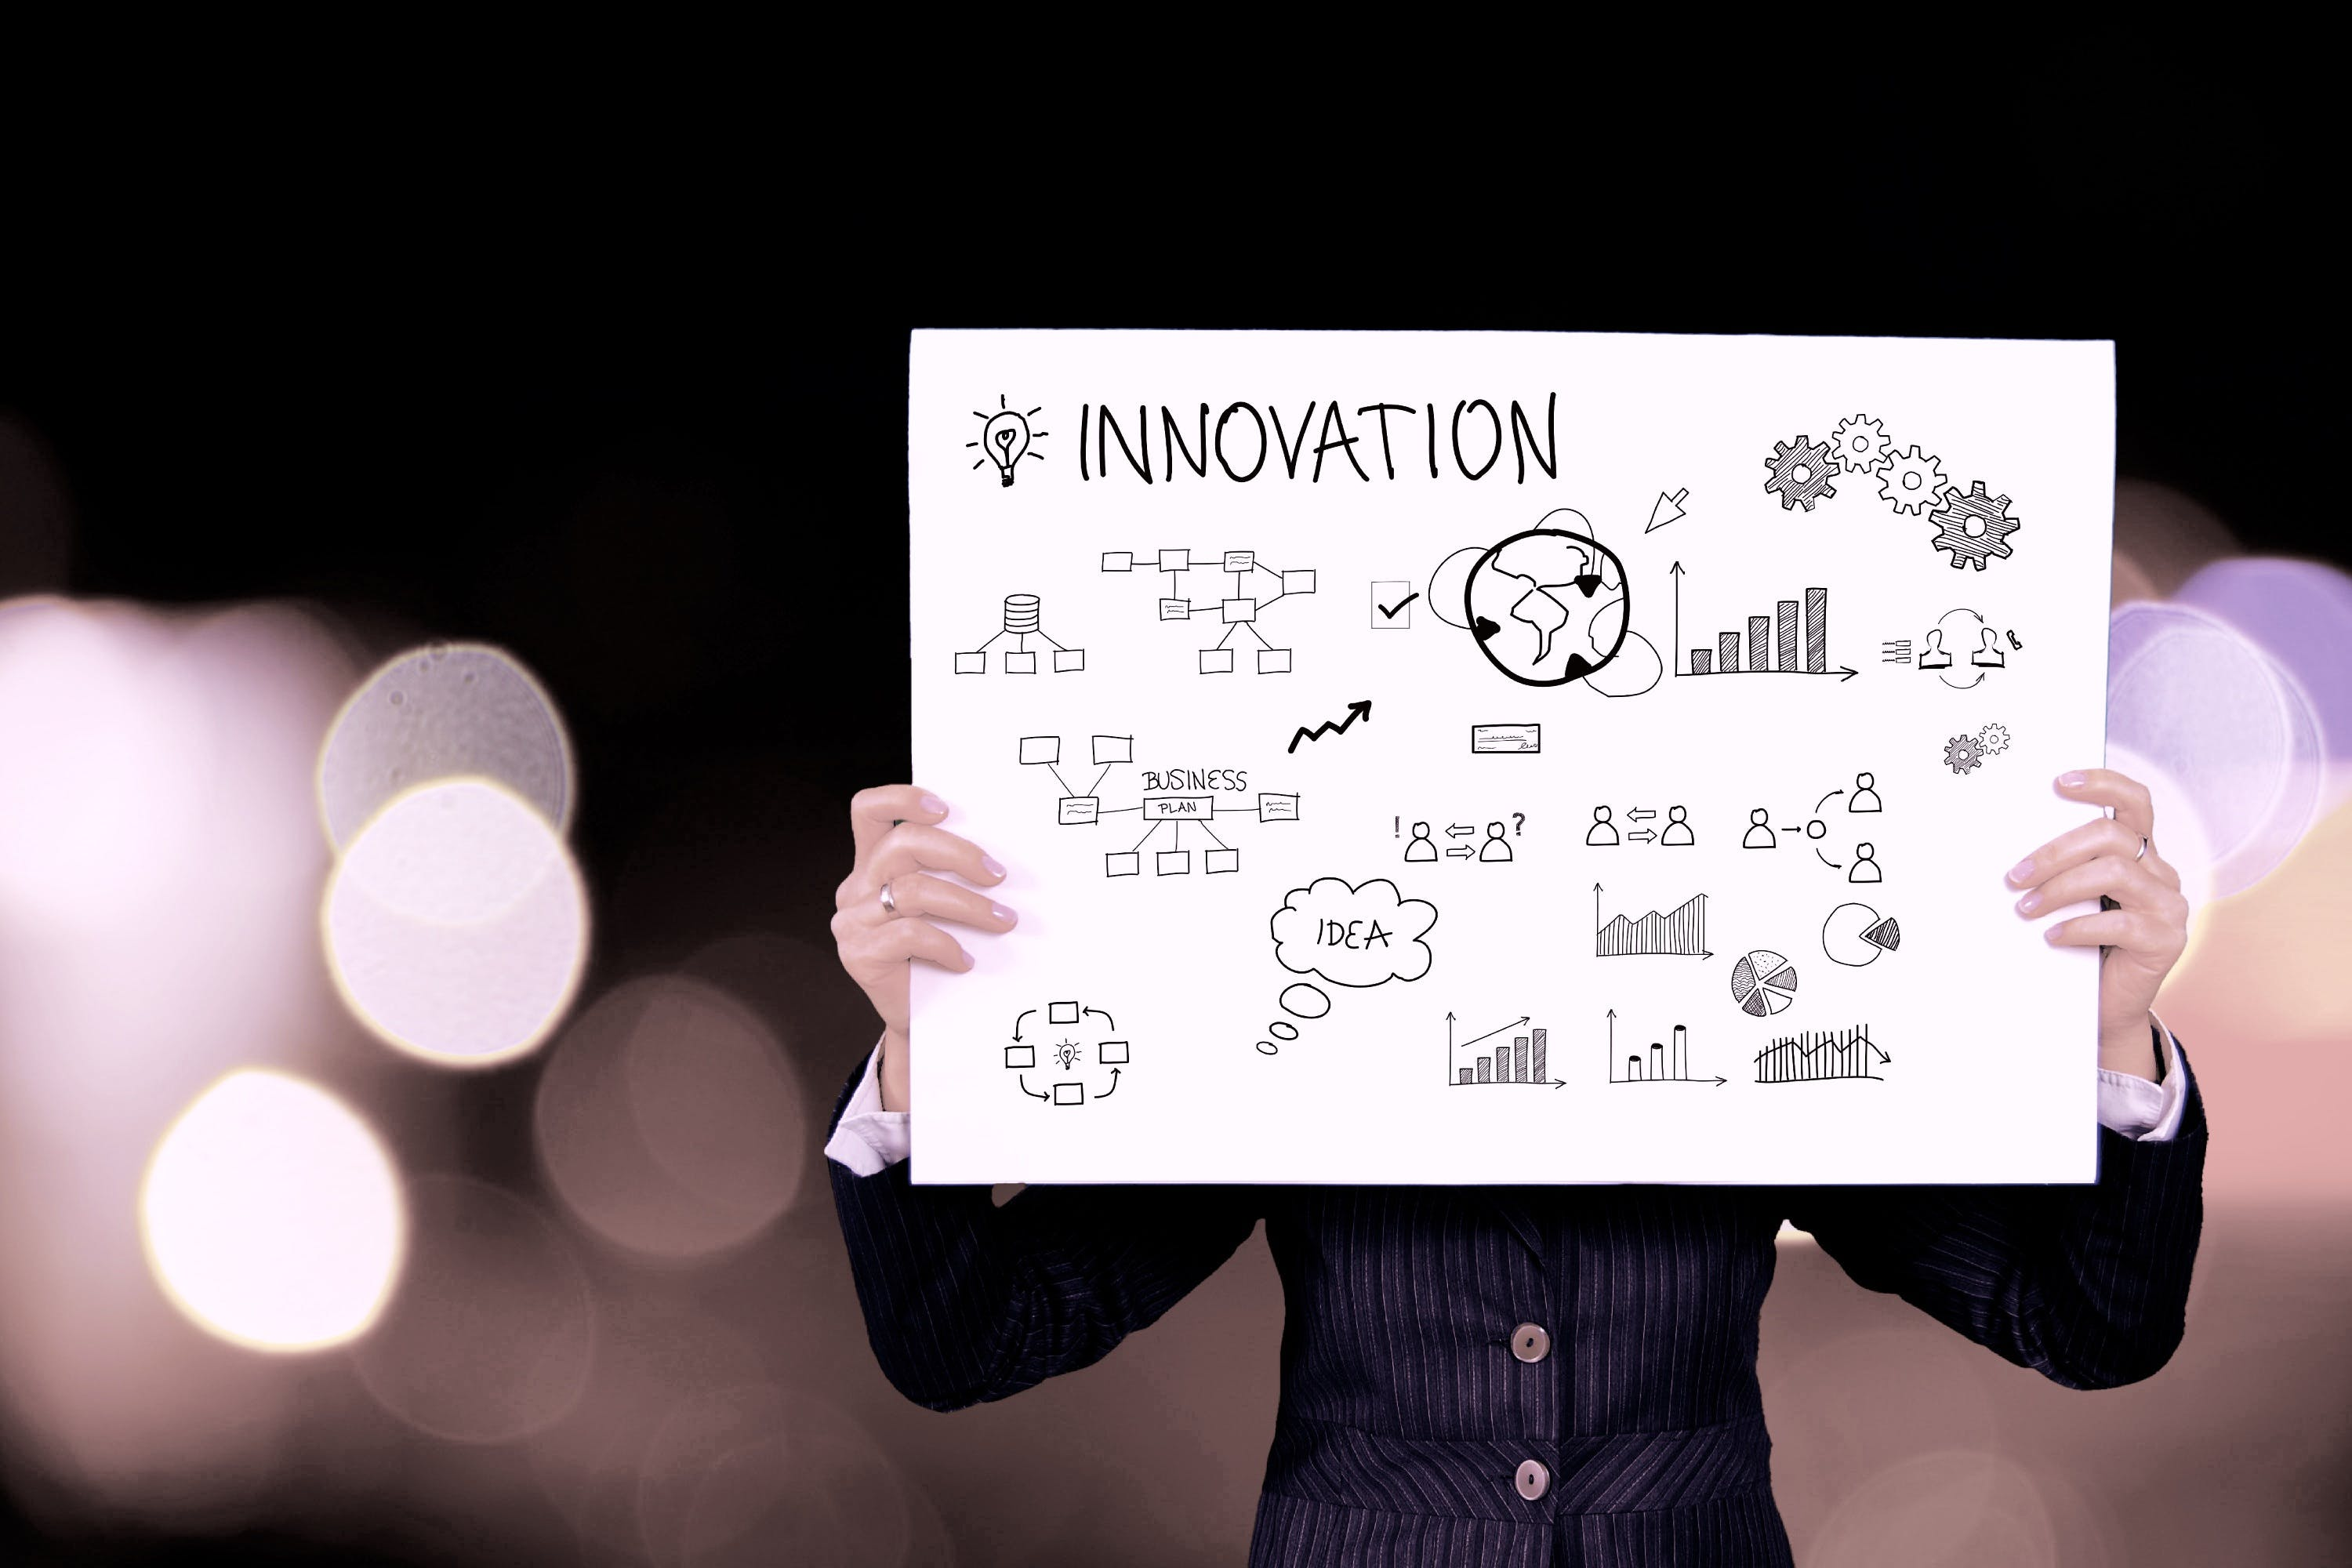 Person Holding Innovation Plan Board